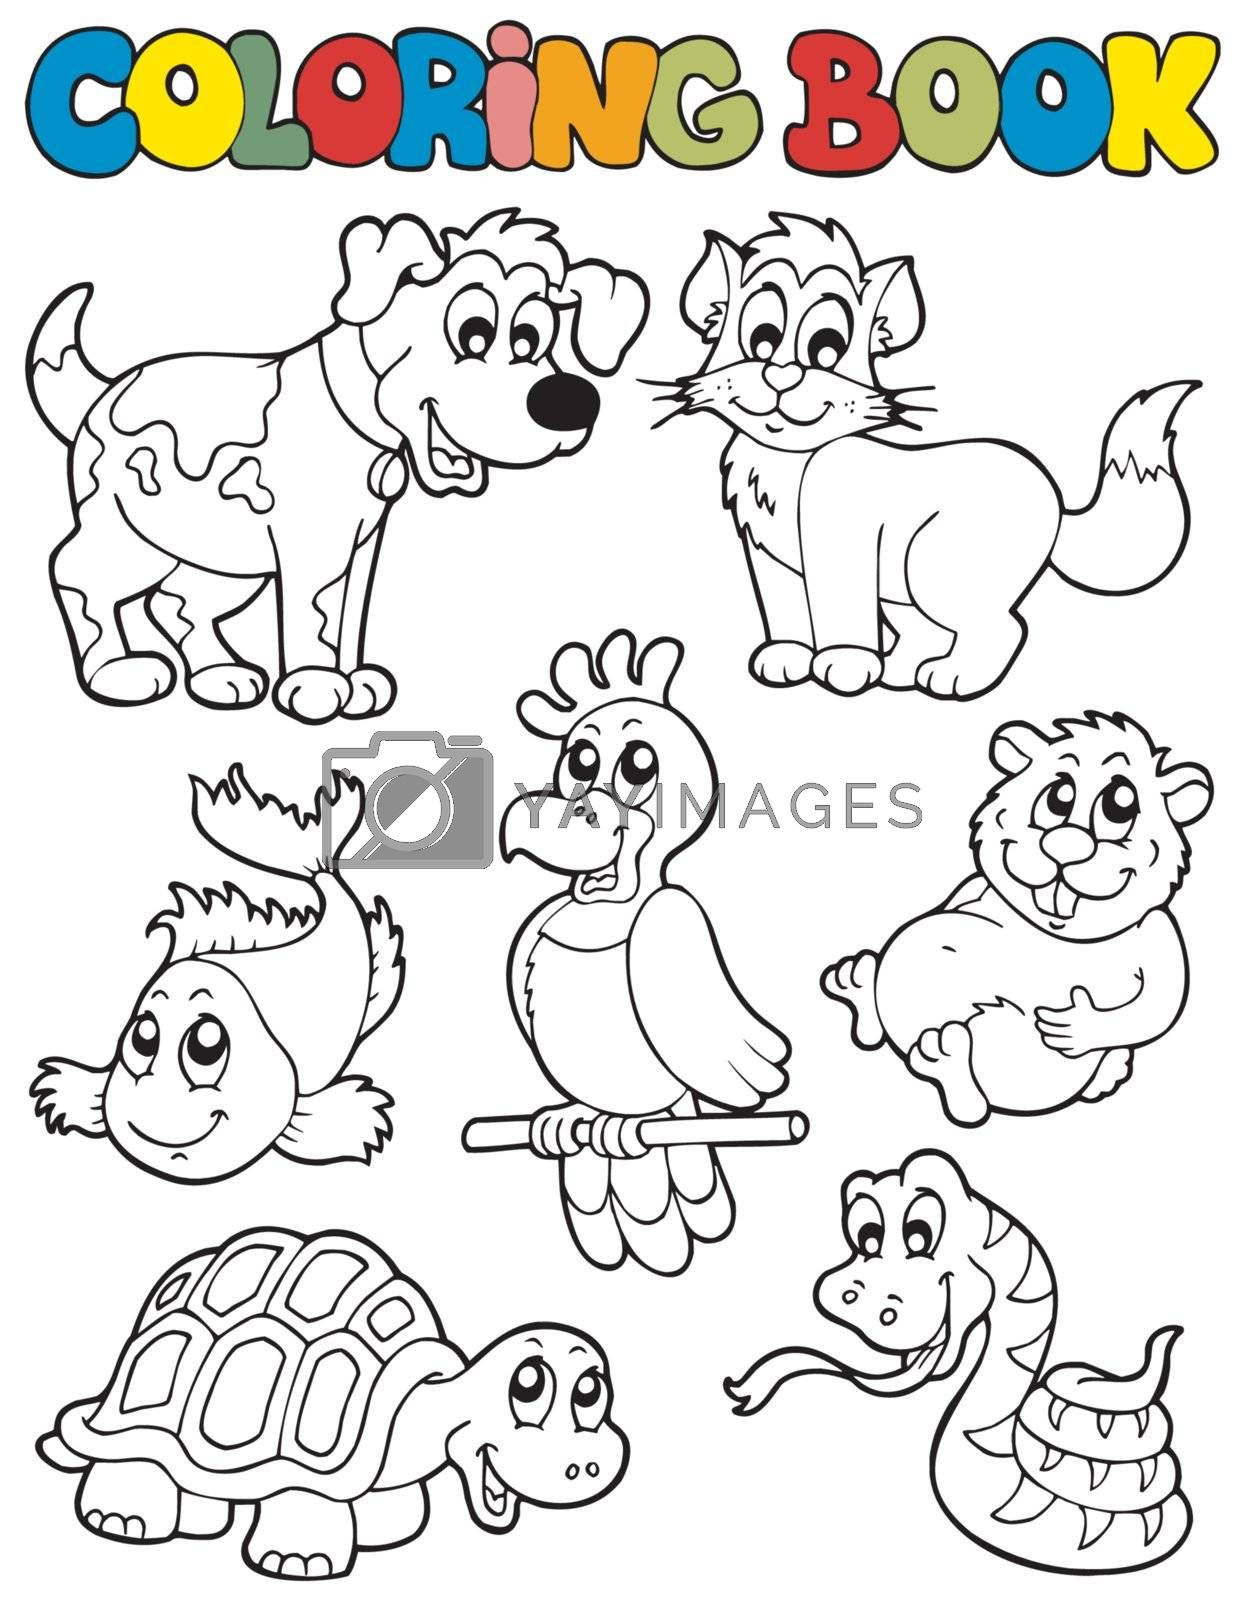 Coloring book with pets 2 - vector illustration.